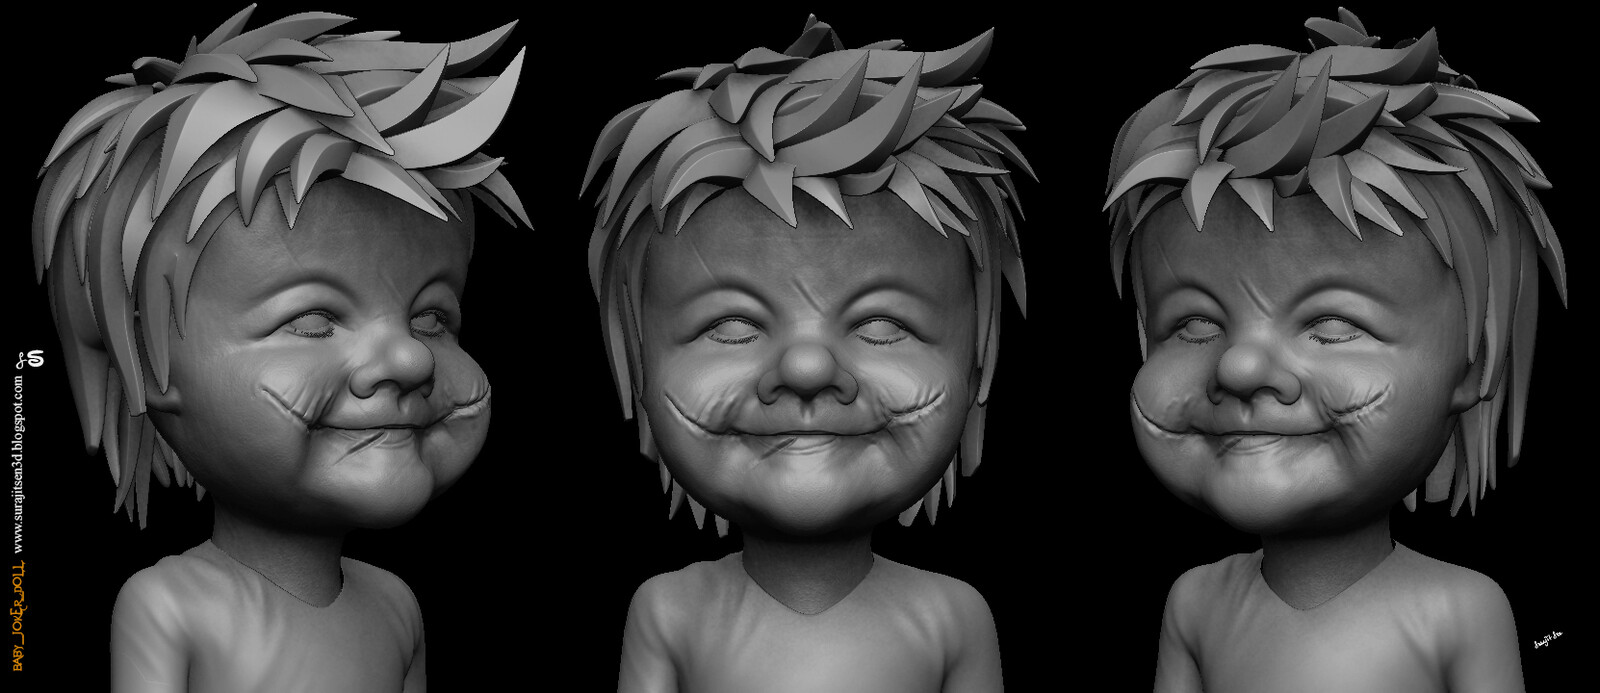 Baby_Joker_Doll CG character. My free time creation. Study work. Tried to make a form of my thoughts.